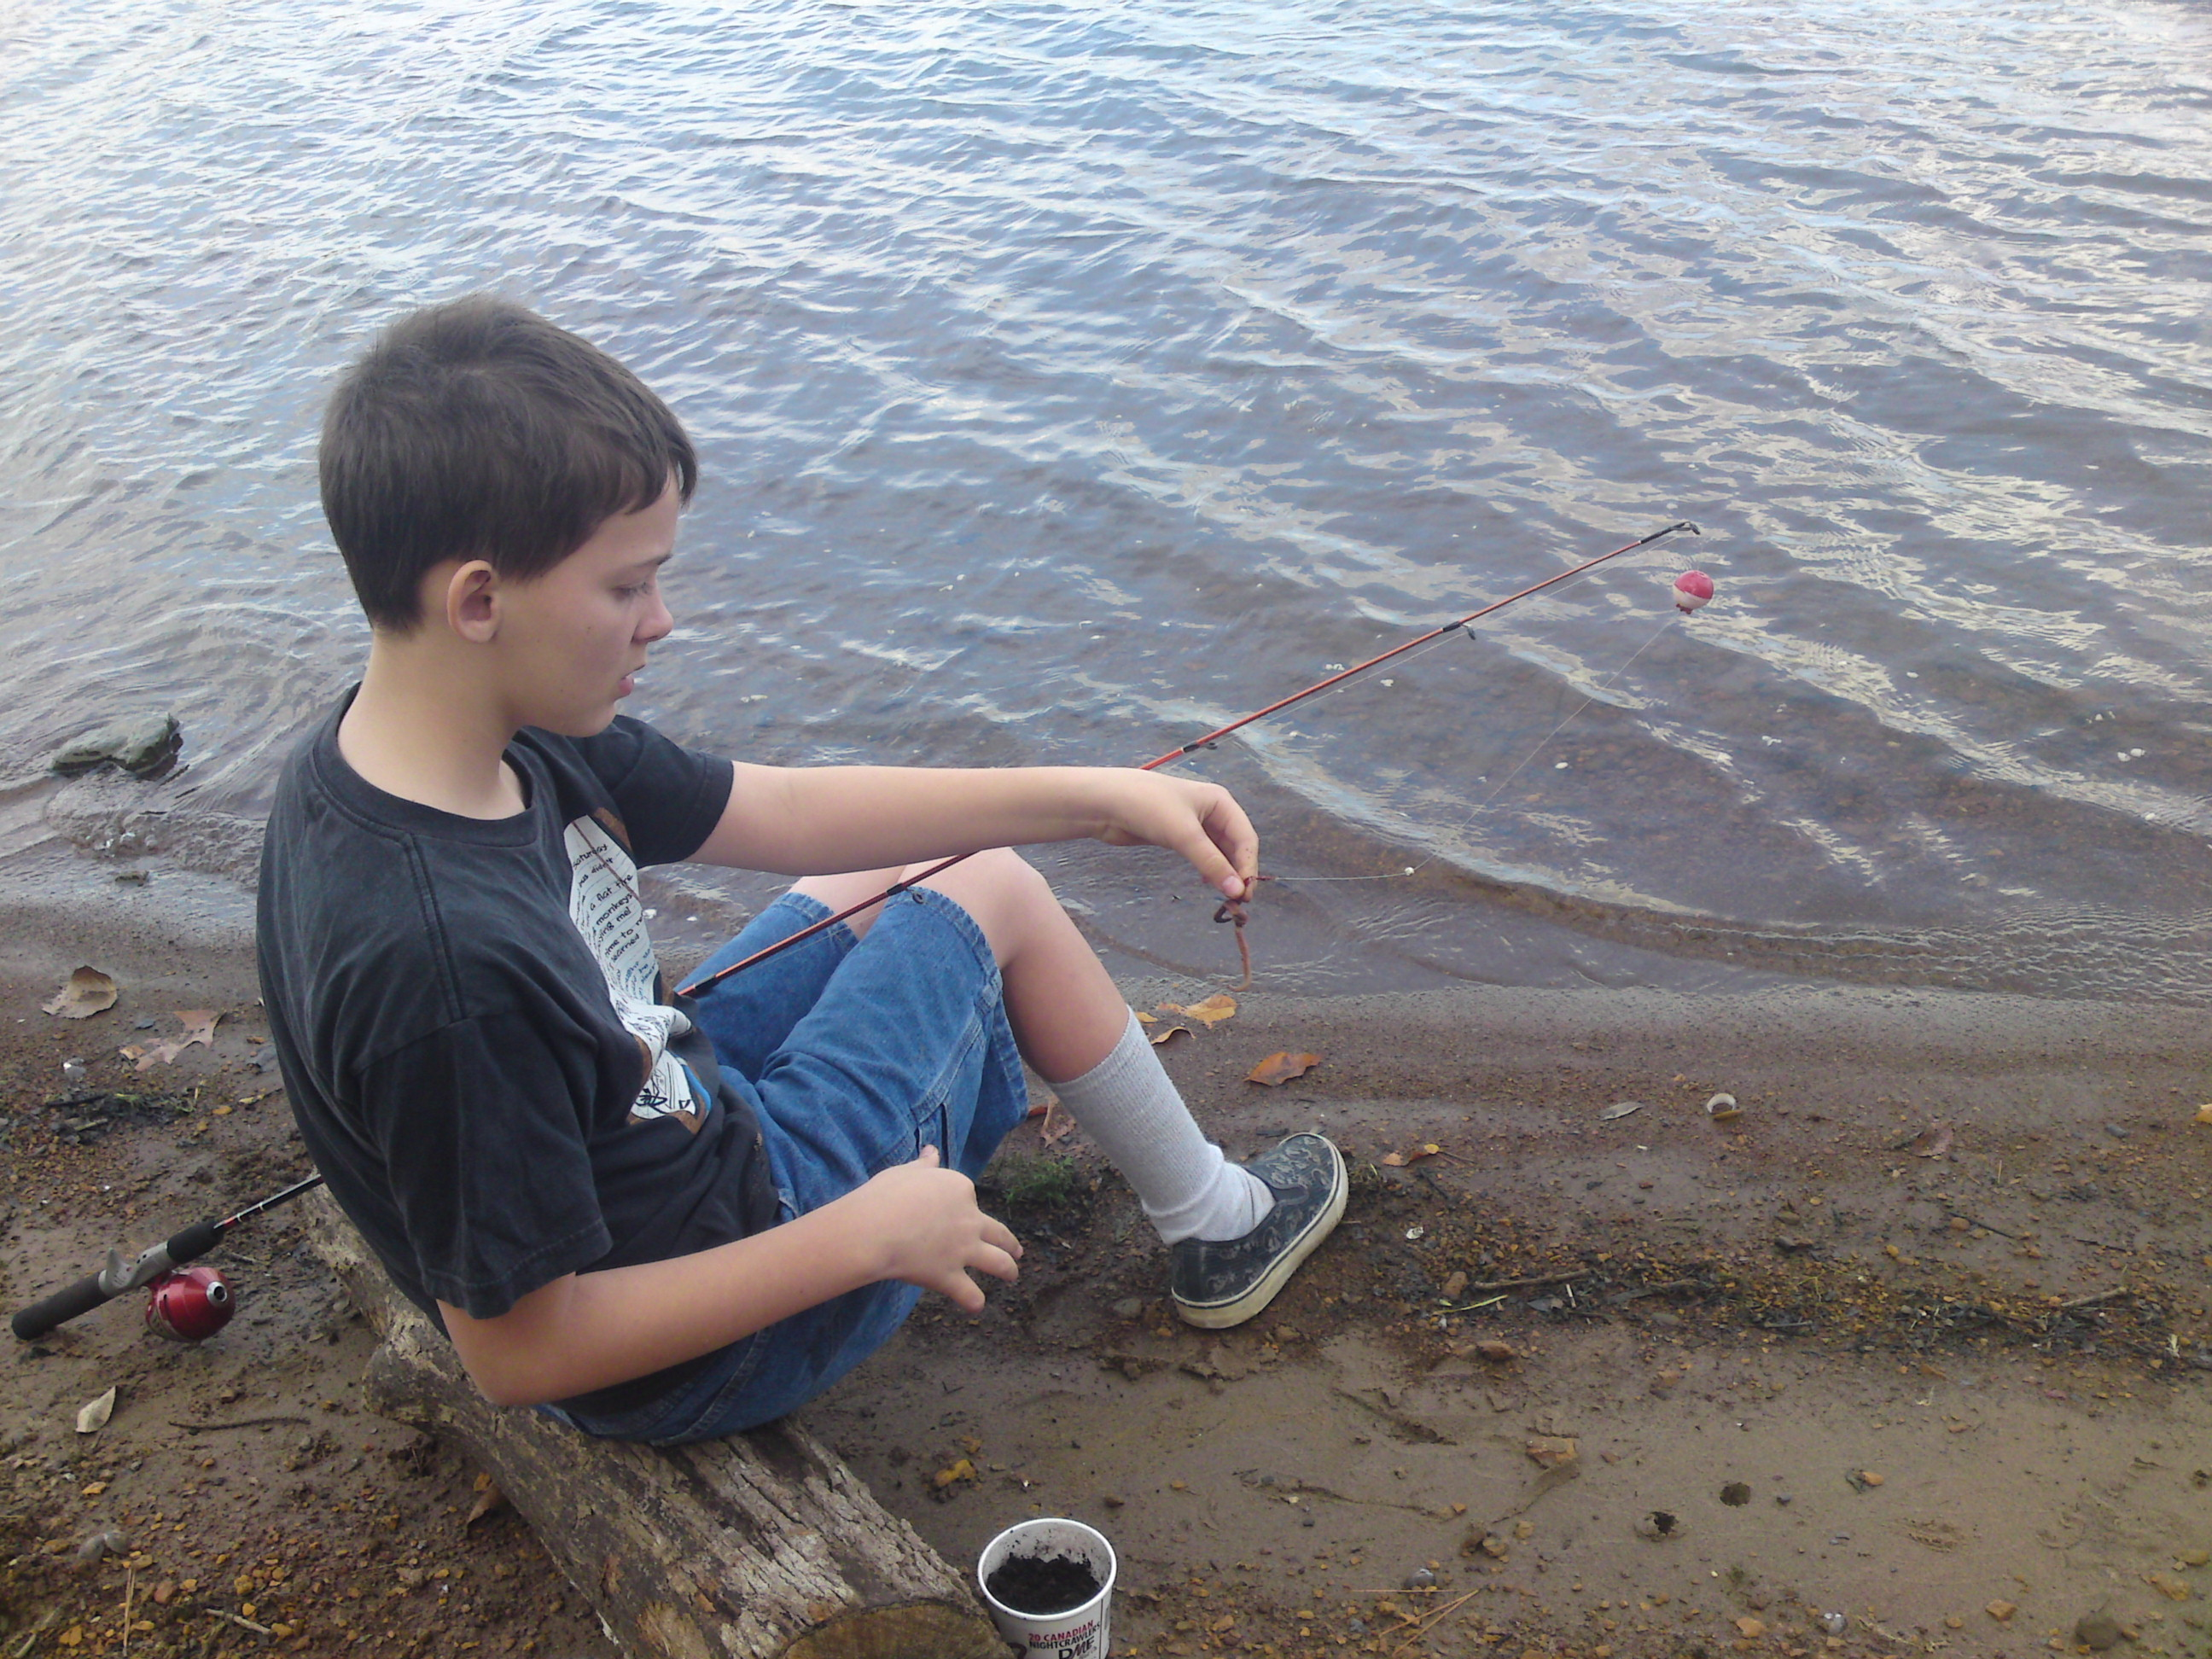 child fishing at a lake